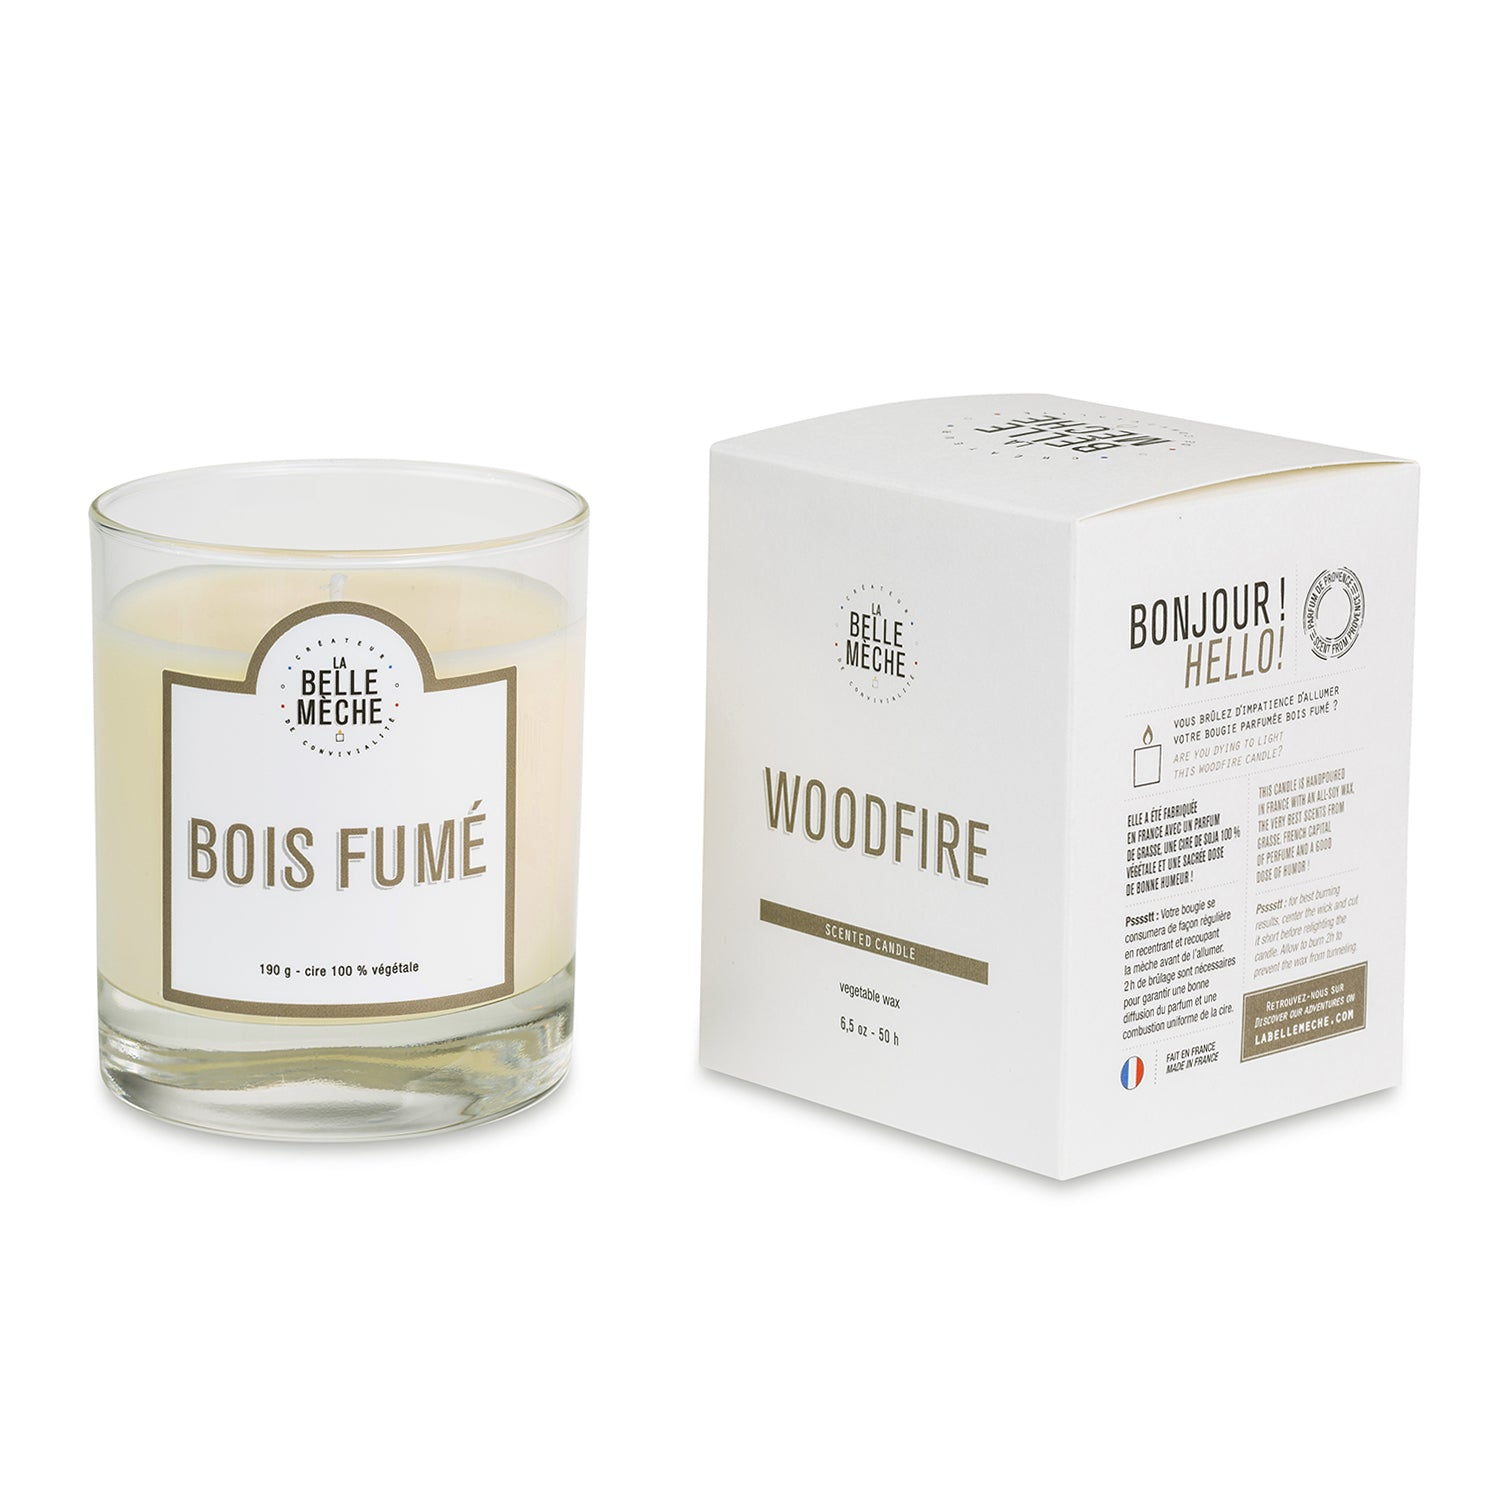 Woodfire (Bois Fumé) Candle